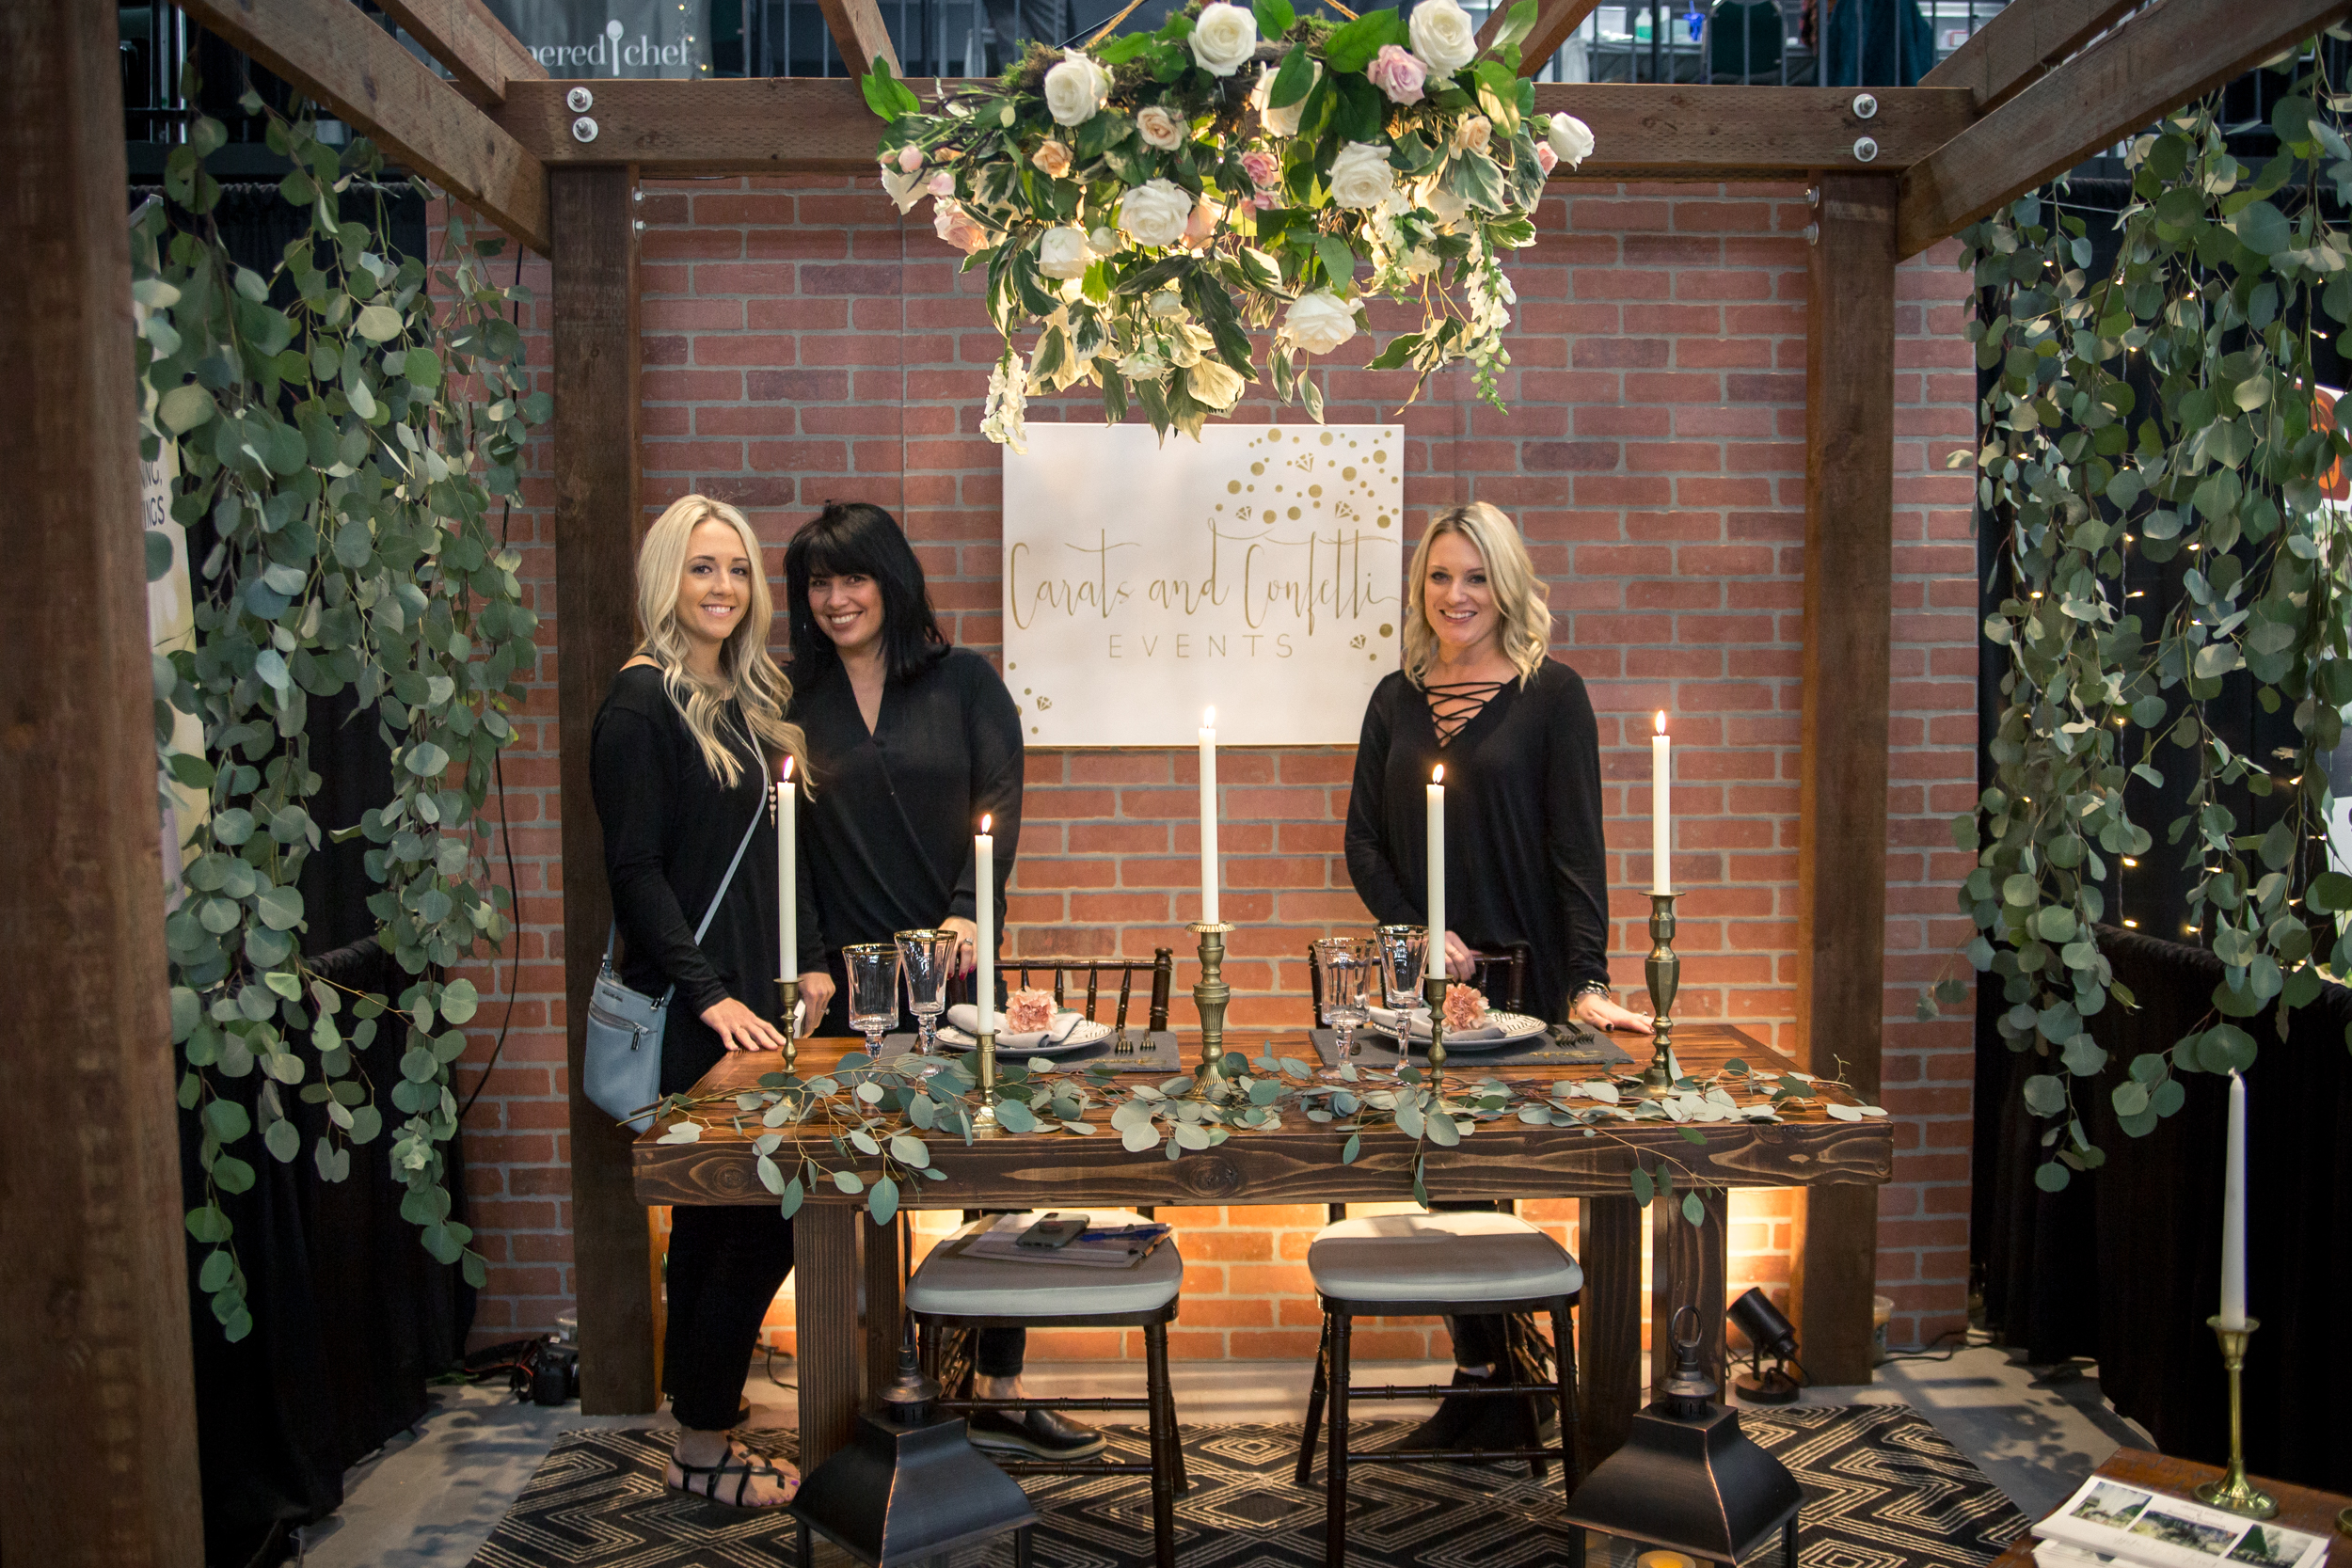 Carats and Confetti Events Redding Bridal Show Wedding Expo